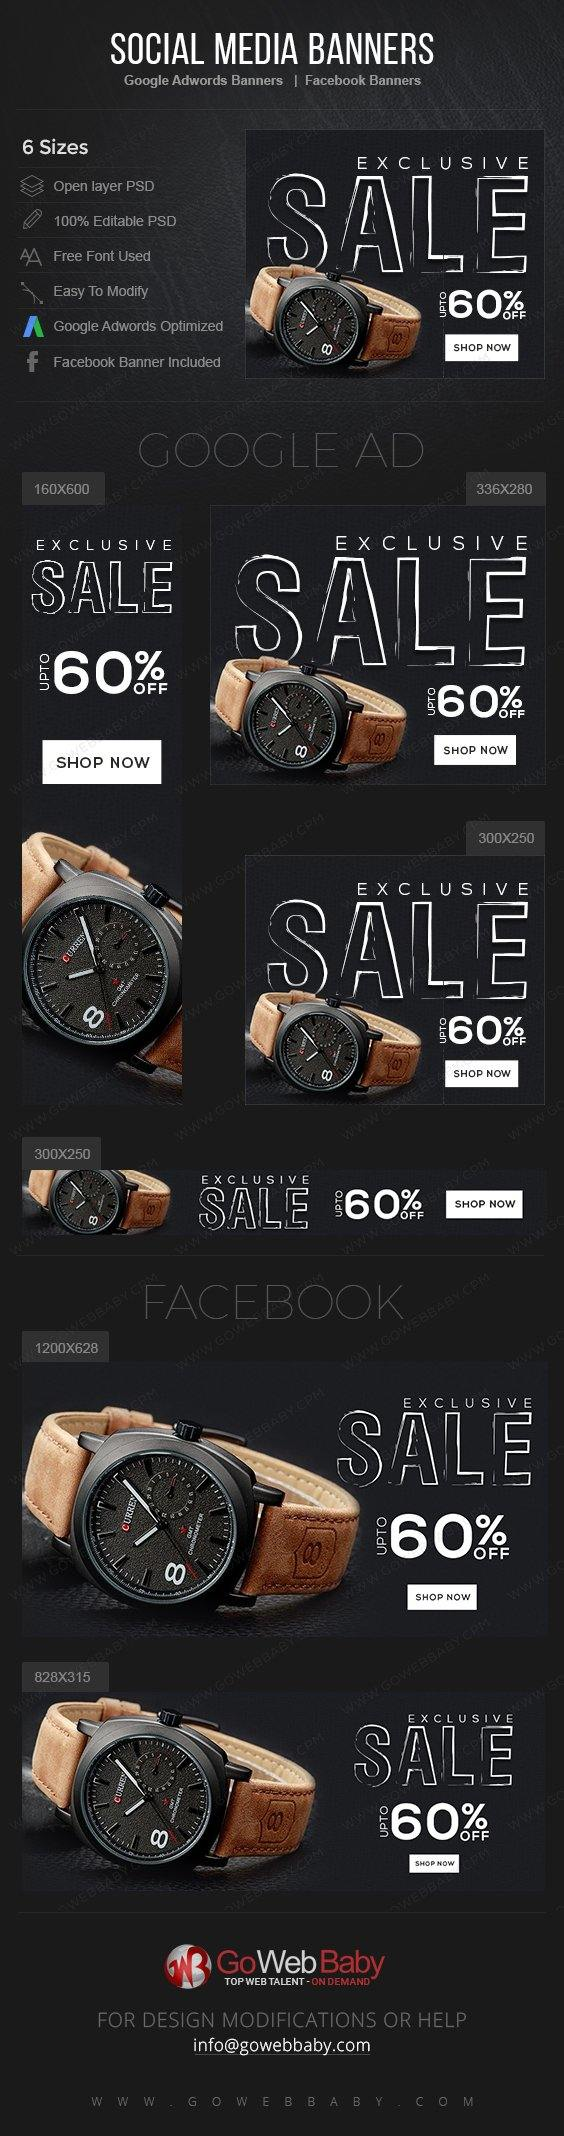 Google Adwords Display Banner With Facebook Banners - Exclusive Watch For Men - GoWebBaby.Com